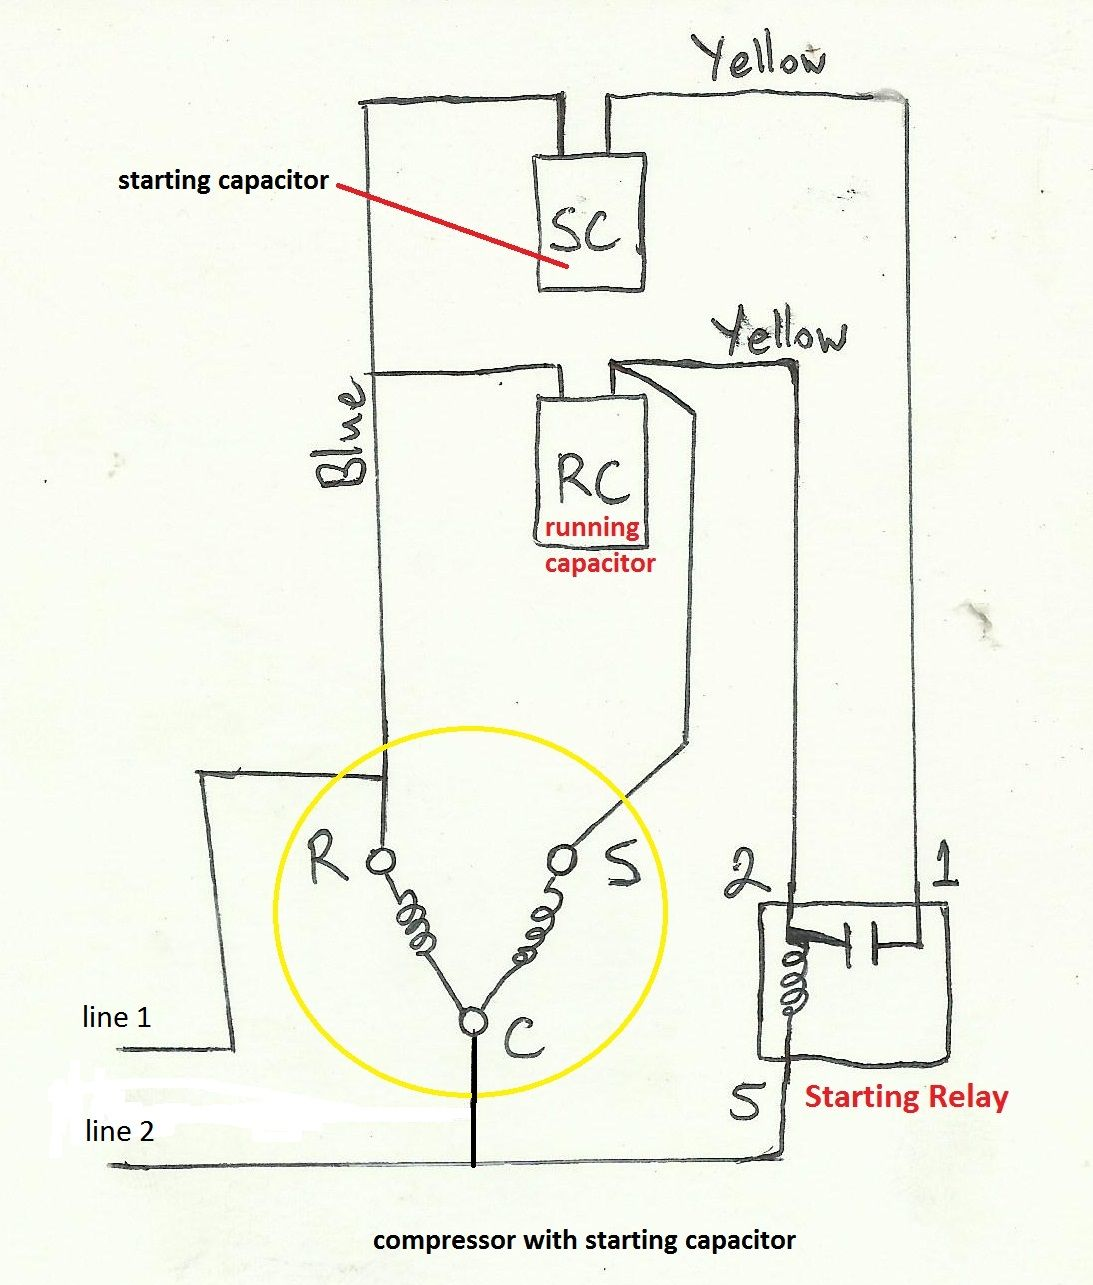 Sensational Potential Relay Start Capacitor Wiring Diagram Basic Electronics Wiring Cloud Icalpermsplehendilmohammedshrineorg